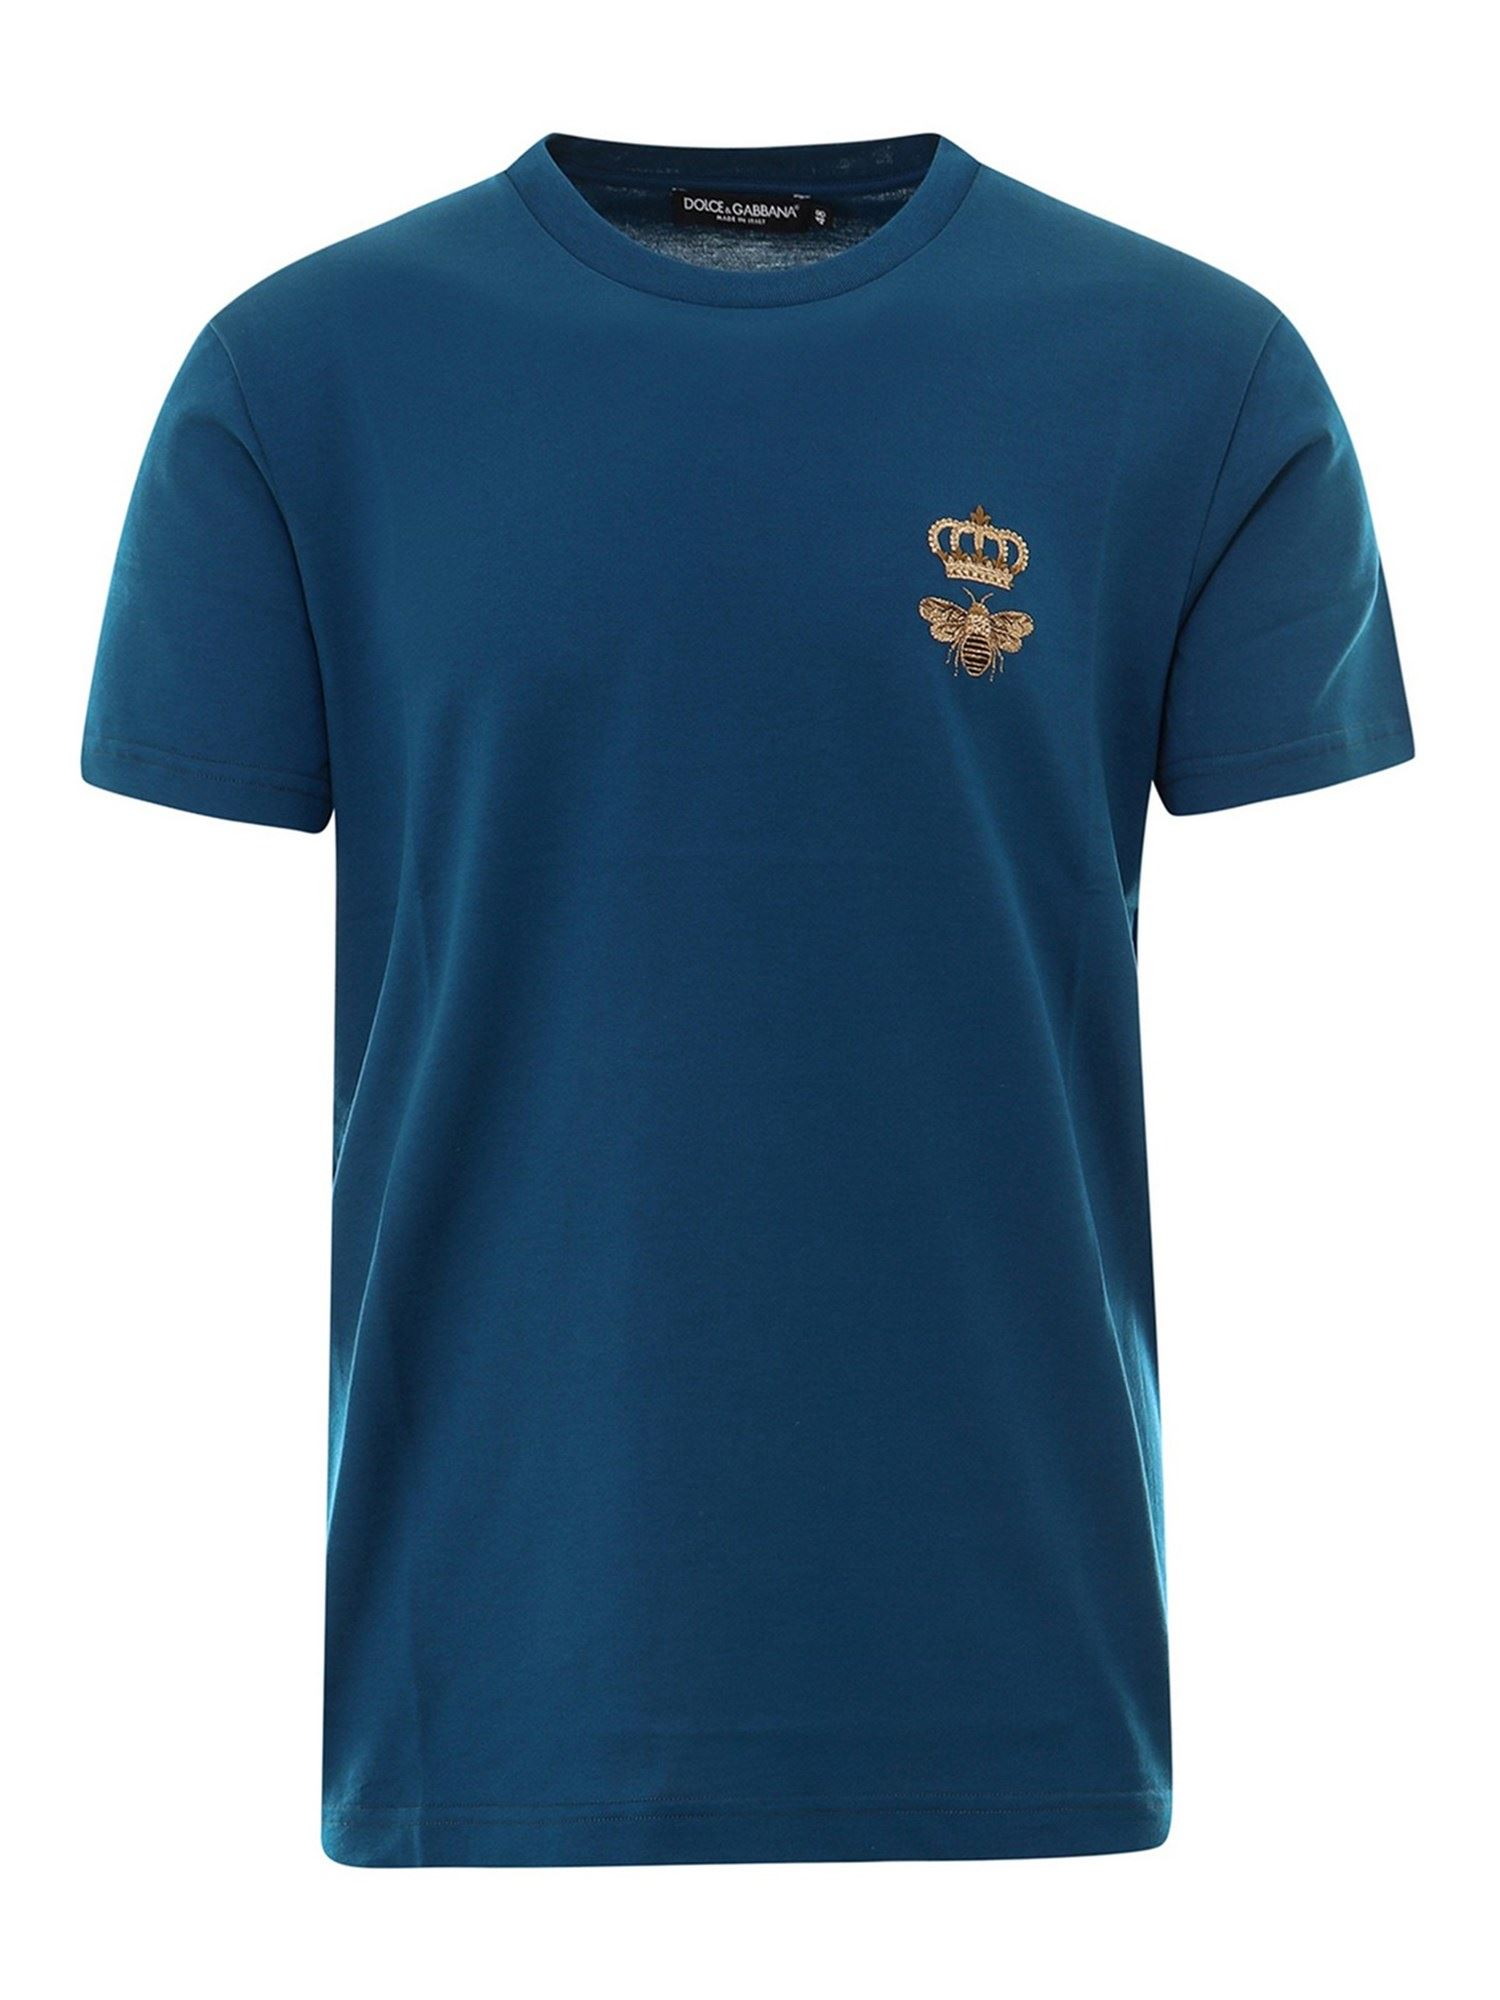 Dolce & Gabbana T-shirts EMBROIDERED T-SHIRT IN BLUE